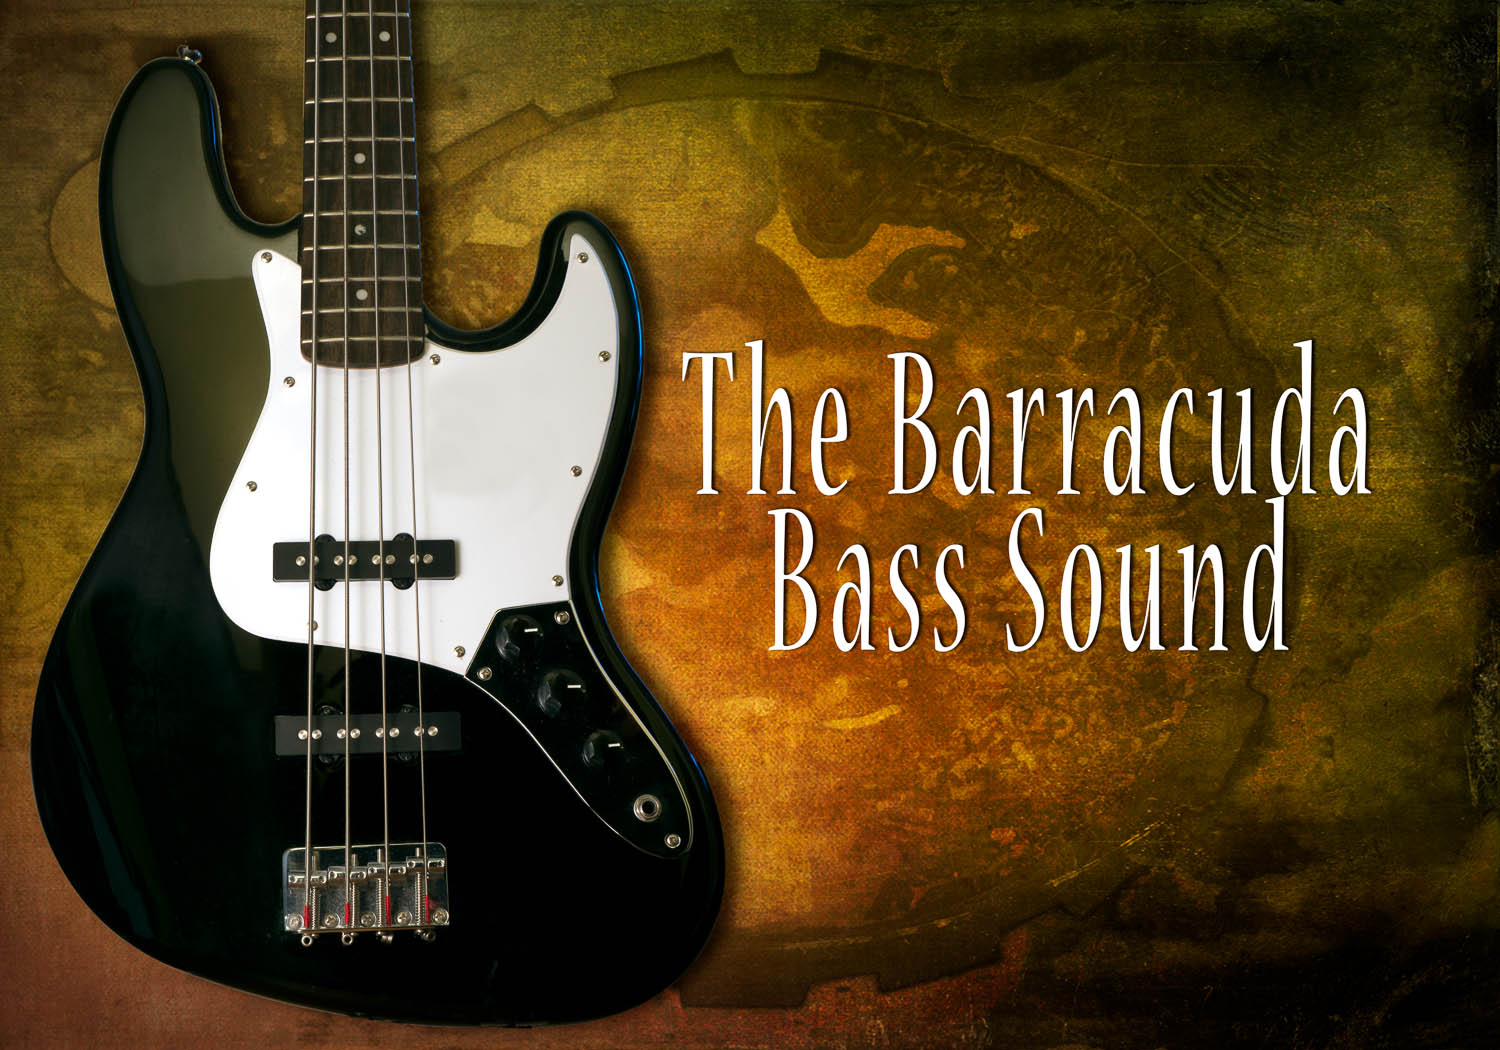 The Barracuda Bass Sound